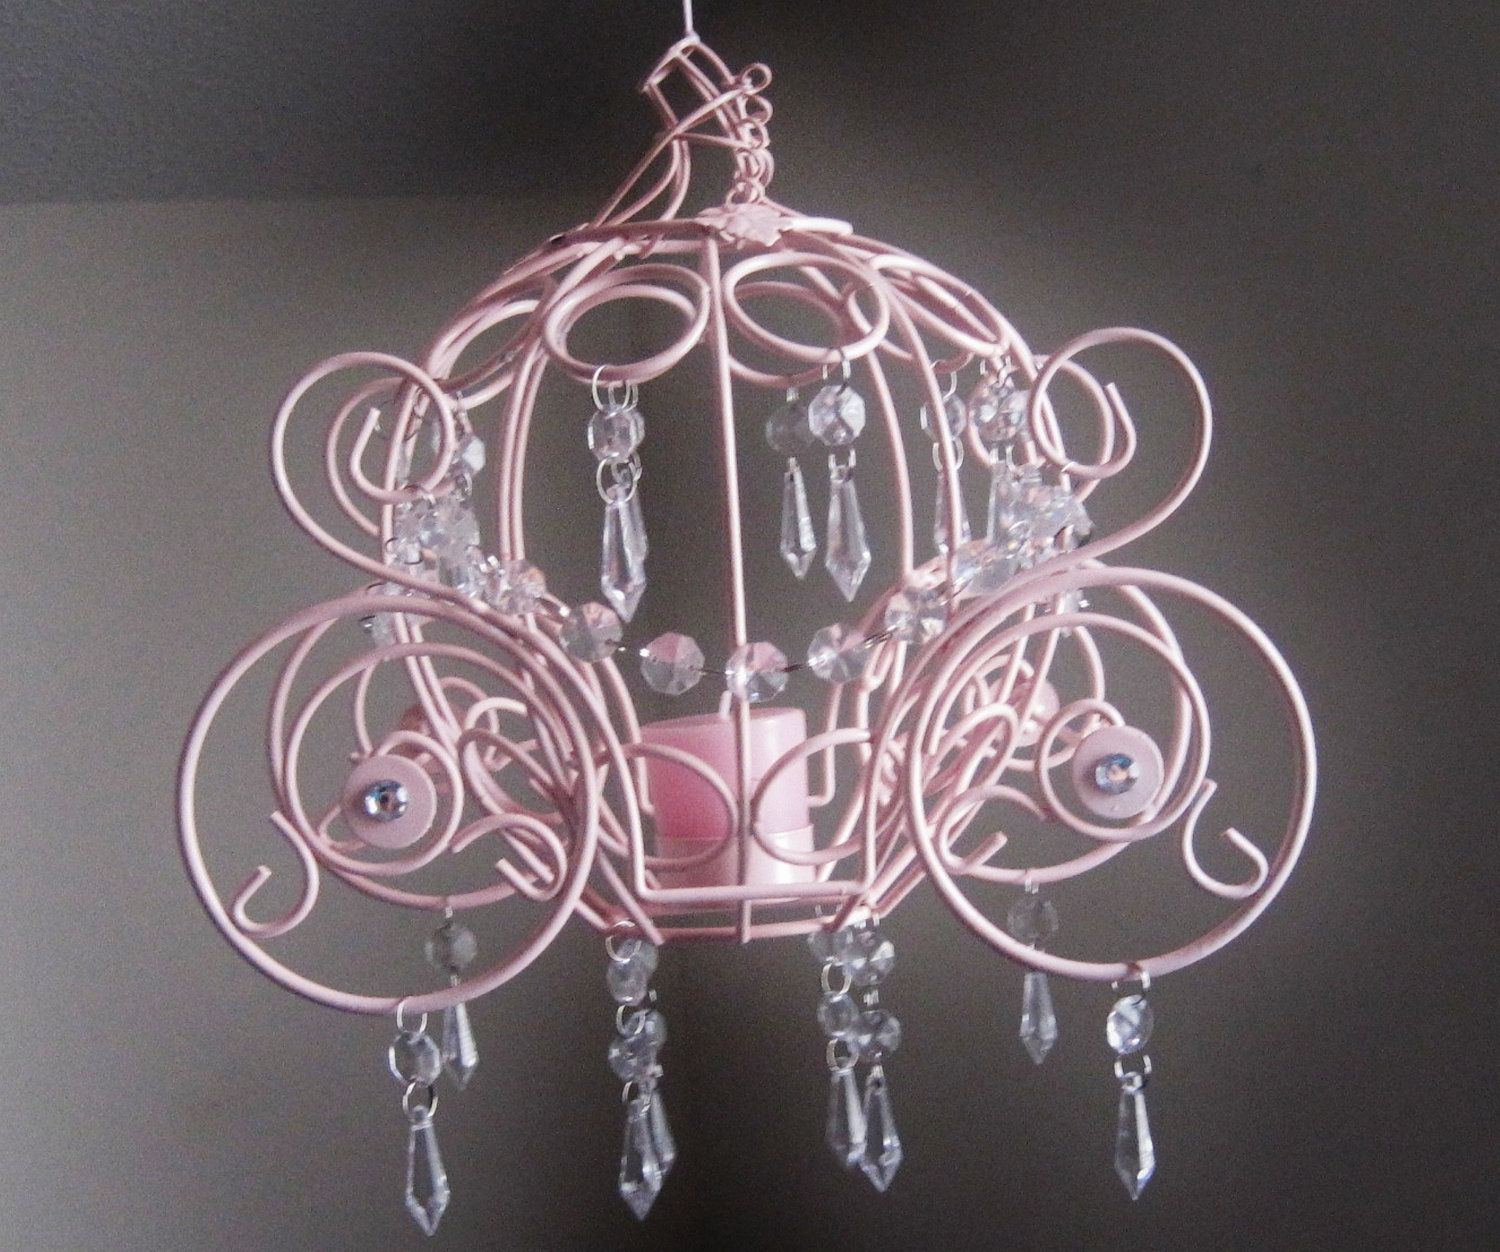 Pottery Barn Carriage Lamp: Cinderella Collection Coach One Candle Hanging Chandelier